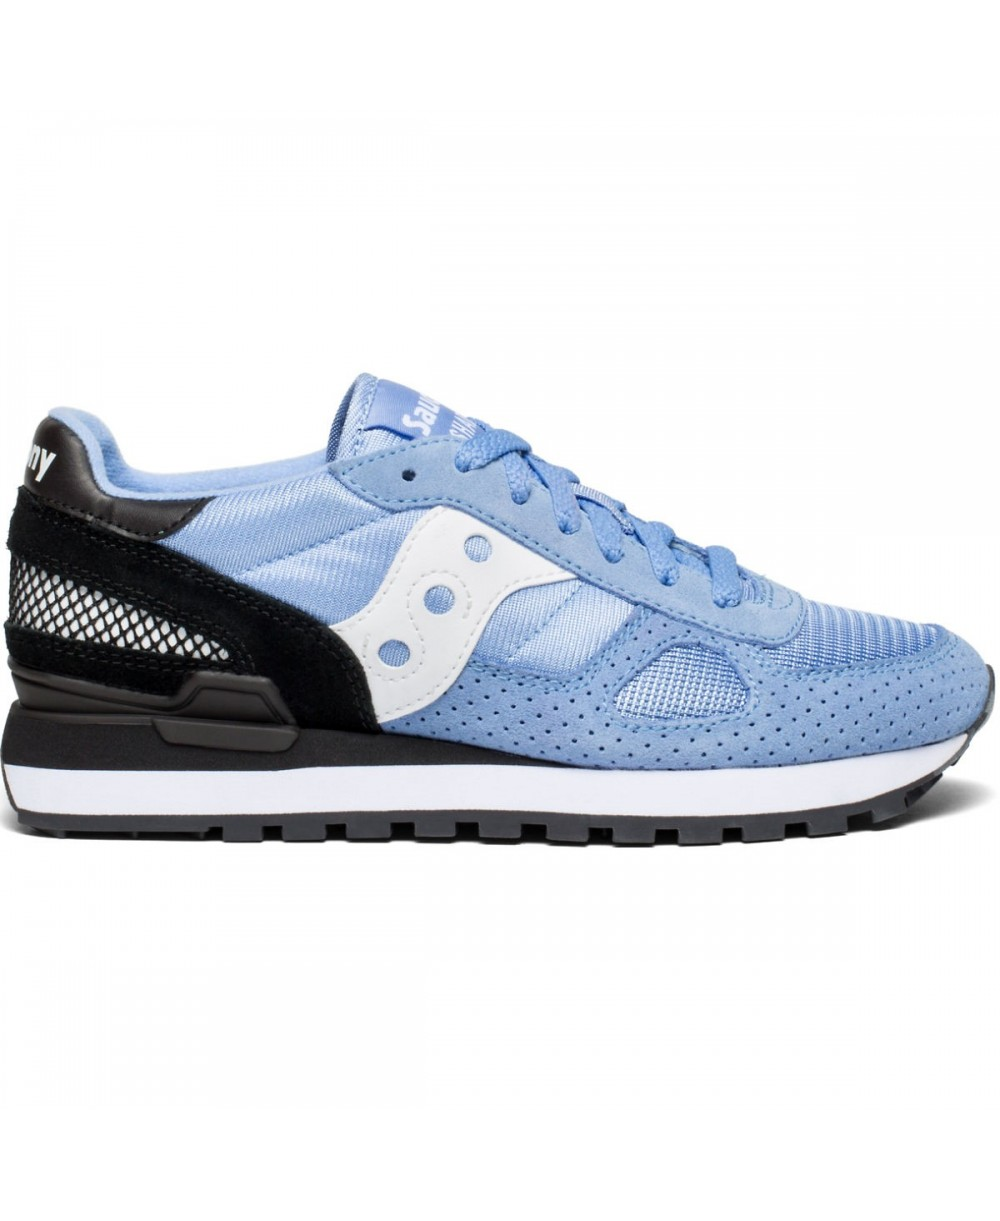 buy online 088db 96da1 Women's Shadow Original Sneakers Shoes Blue/Black